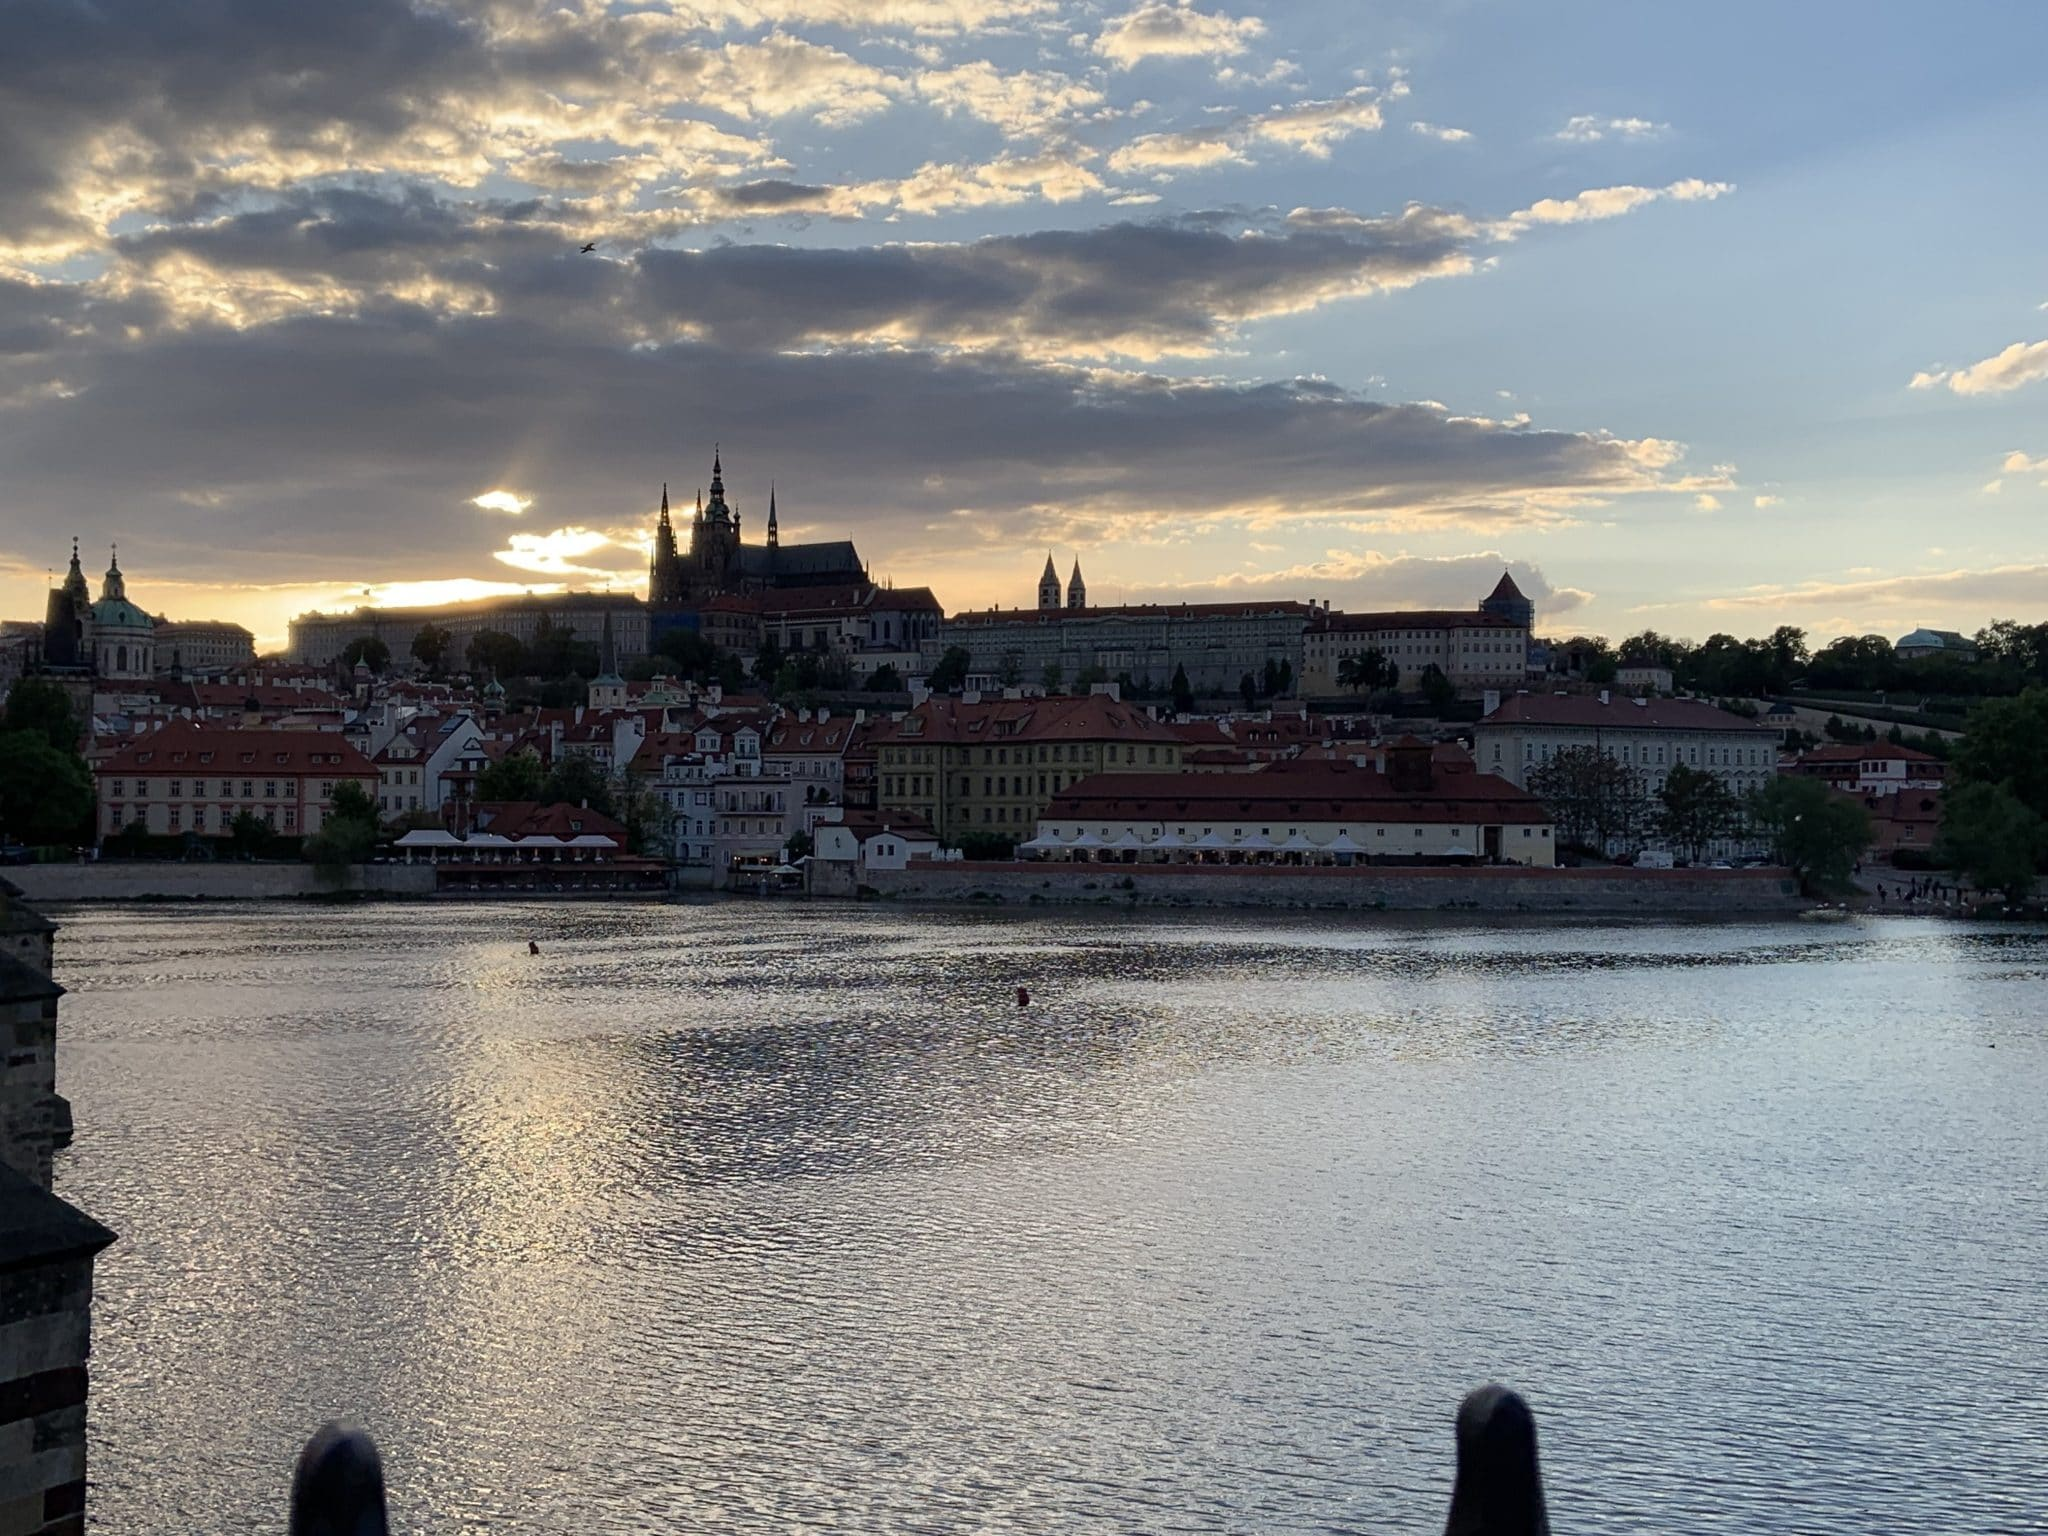 Patrick's Reflection: Prague Spring 2019